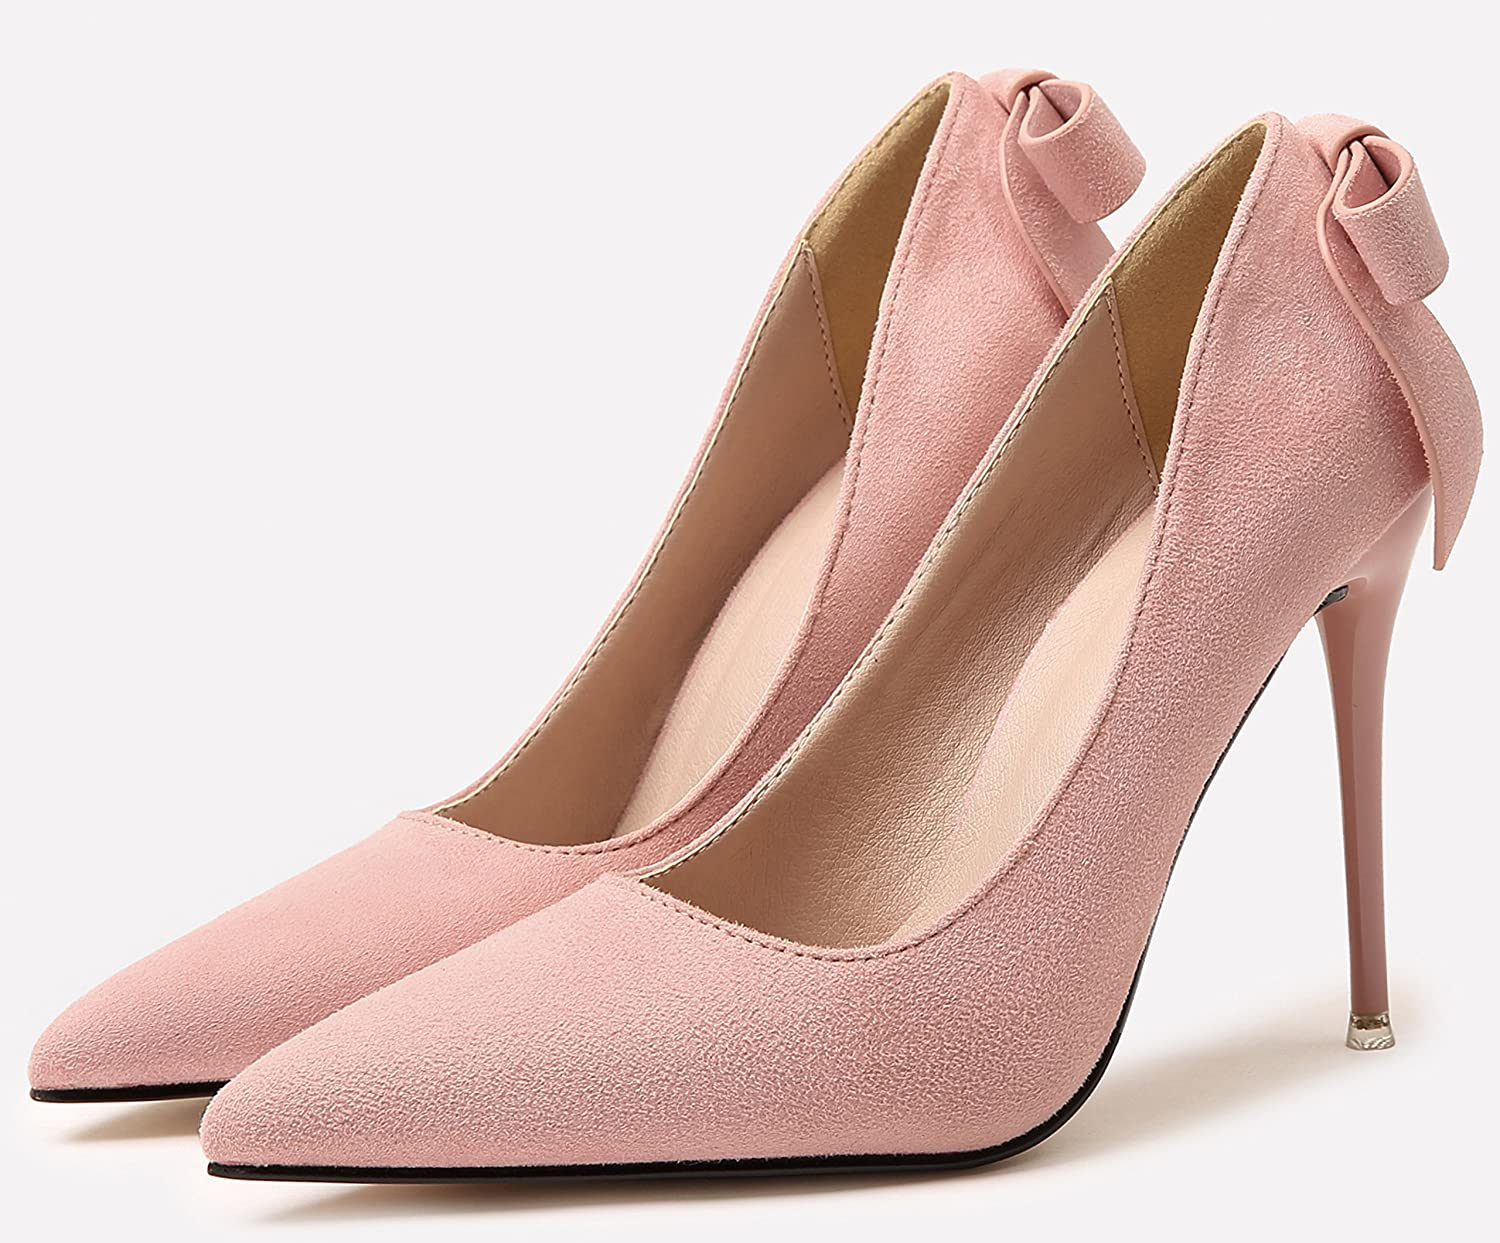 a1591bcd49266 Amazon.com: BIGTREE High Heels Women Suede Shoes Bowknot Party Pumps ...